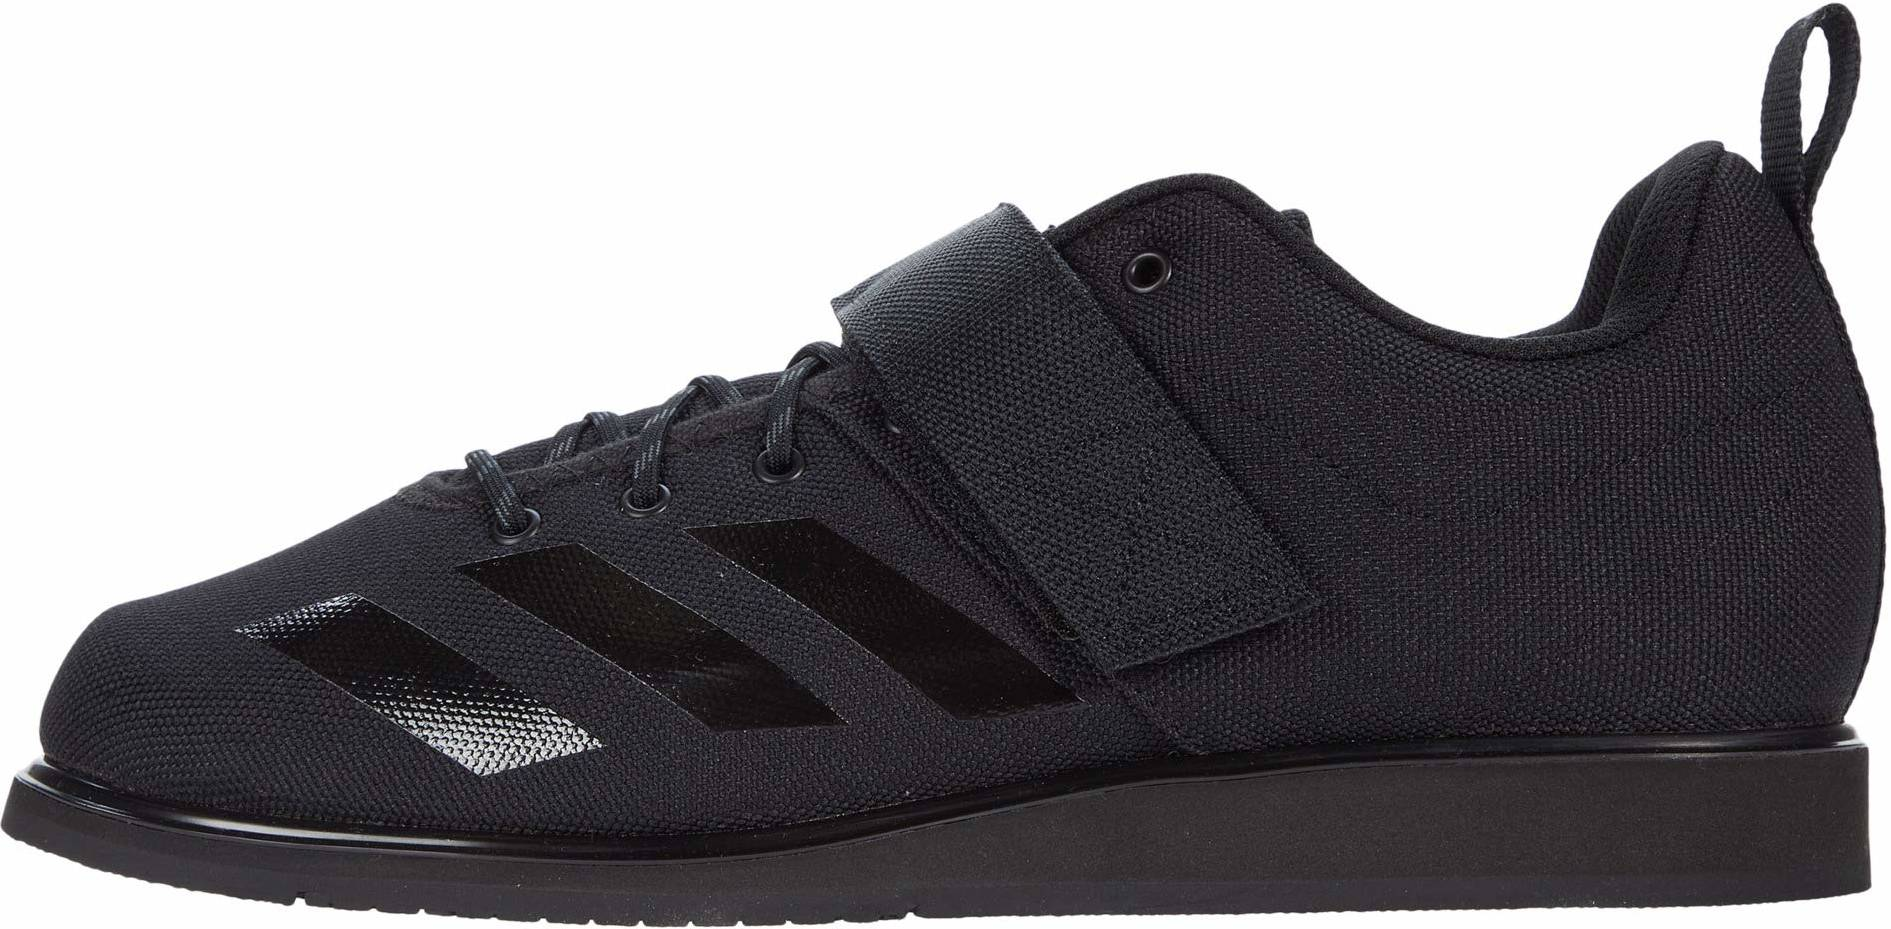 Only £44 + Review of Adidas Powerlift 4